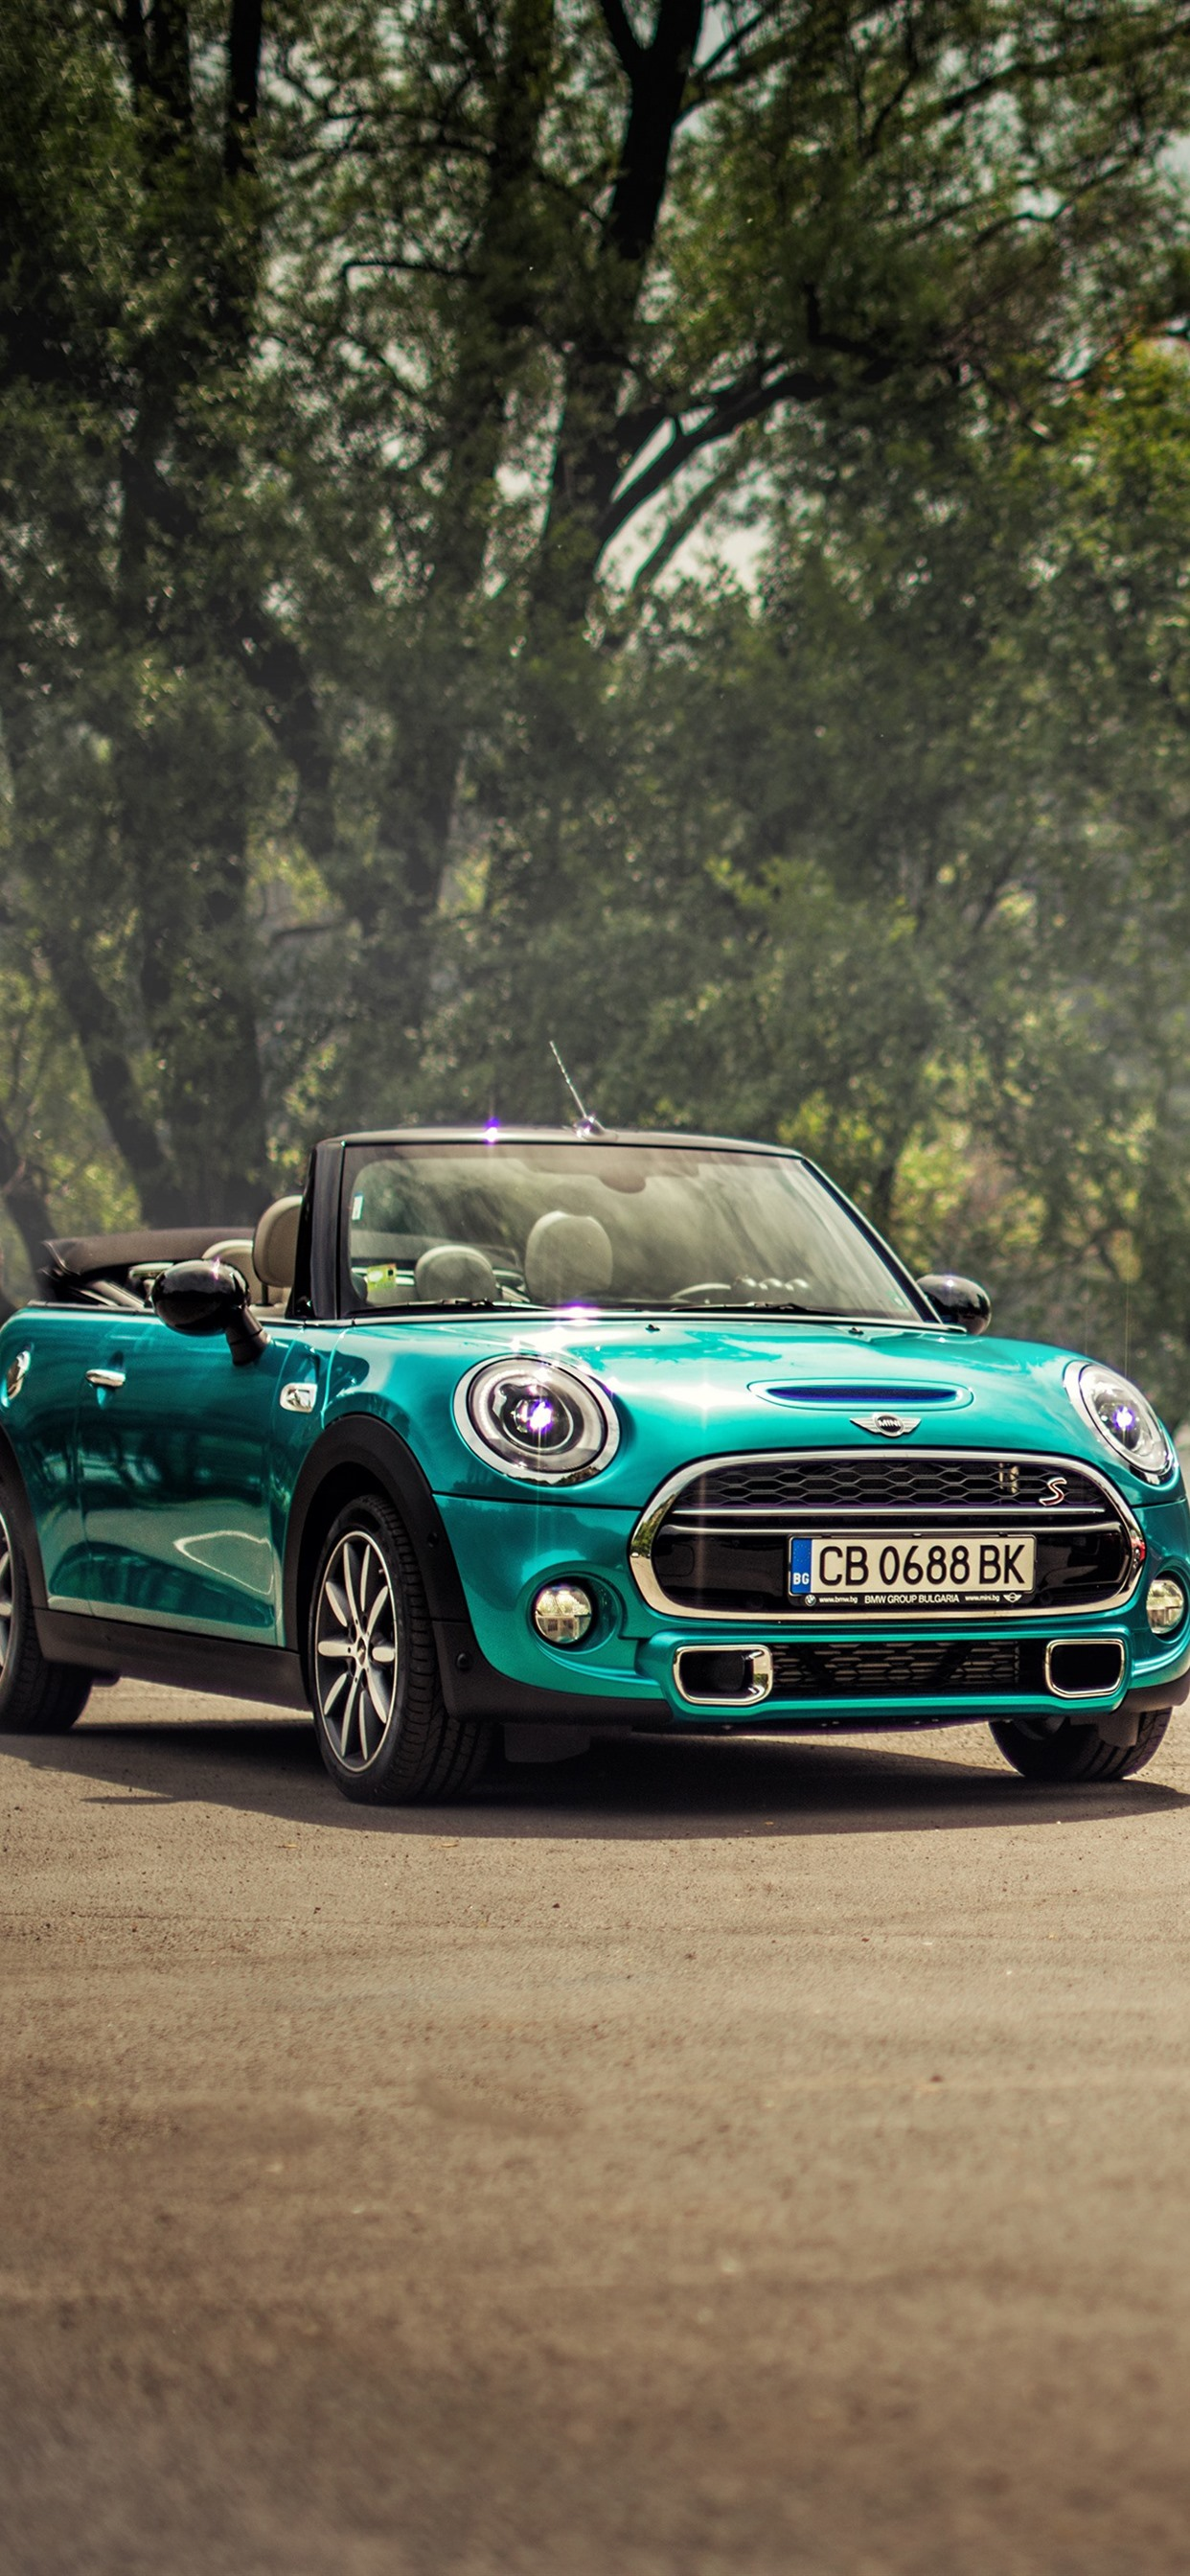 Mini Cooper Blue And Red Cars 1242x2688 Iphone 11 Pro Xs Max Wallpaper Background Picture Image